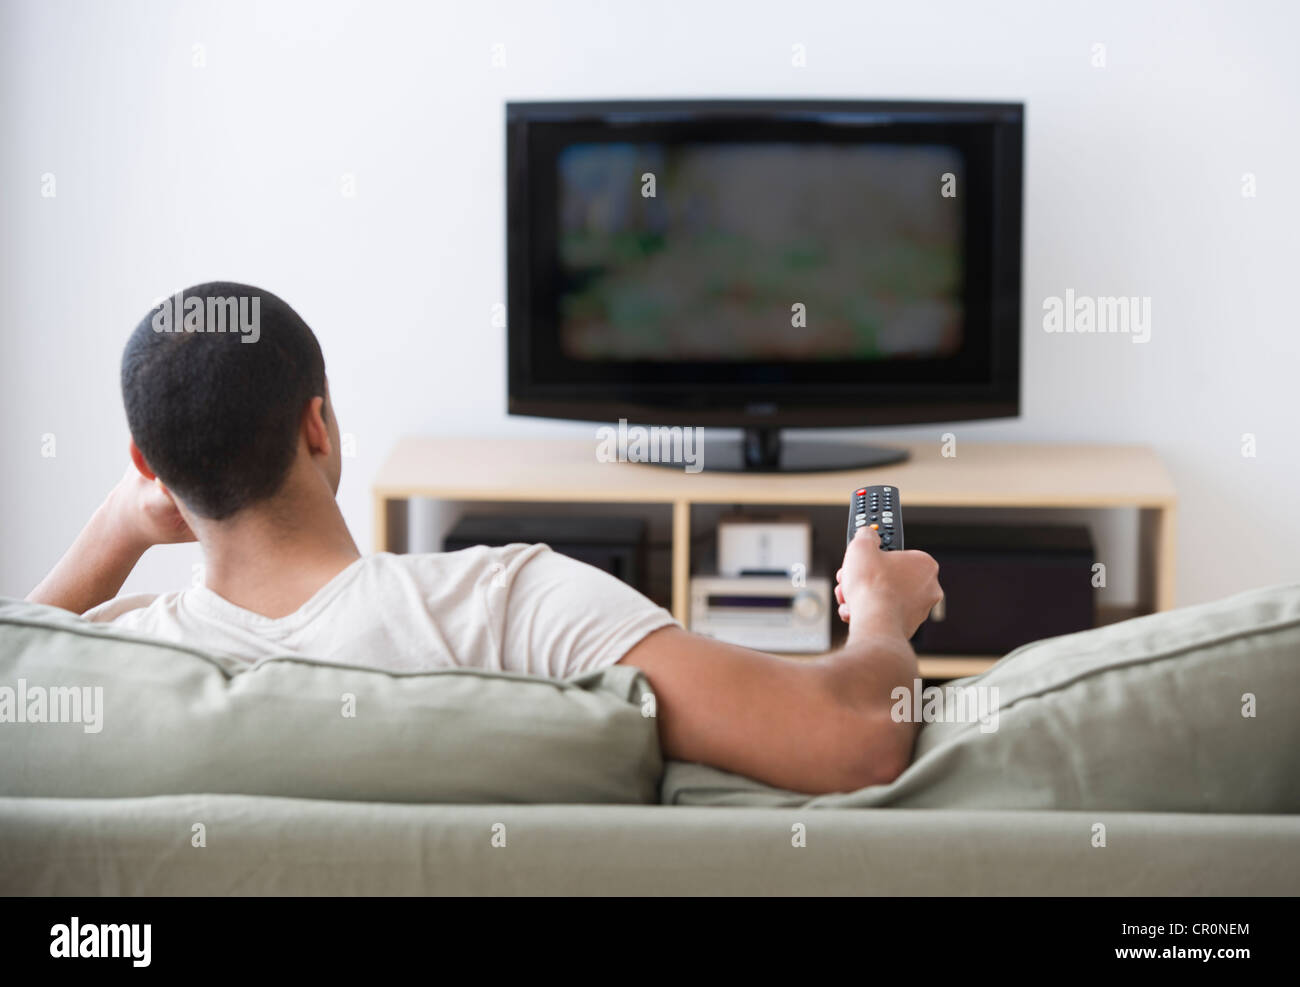 USA, New Jersey, Jersey City, Man watching tv at home - Stock Image